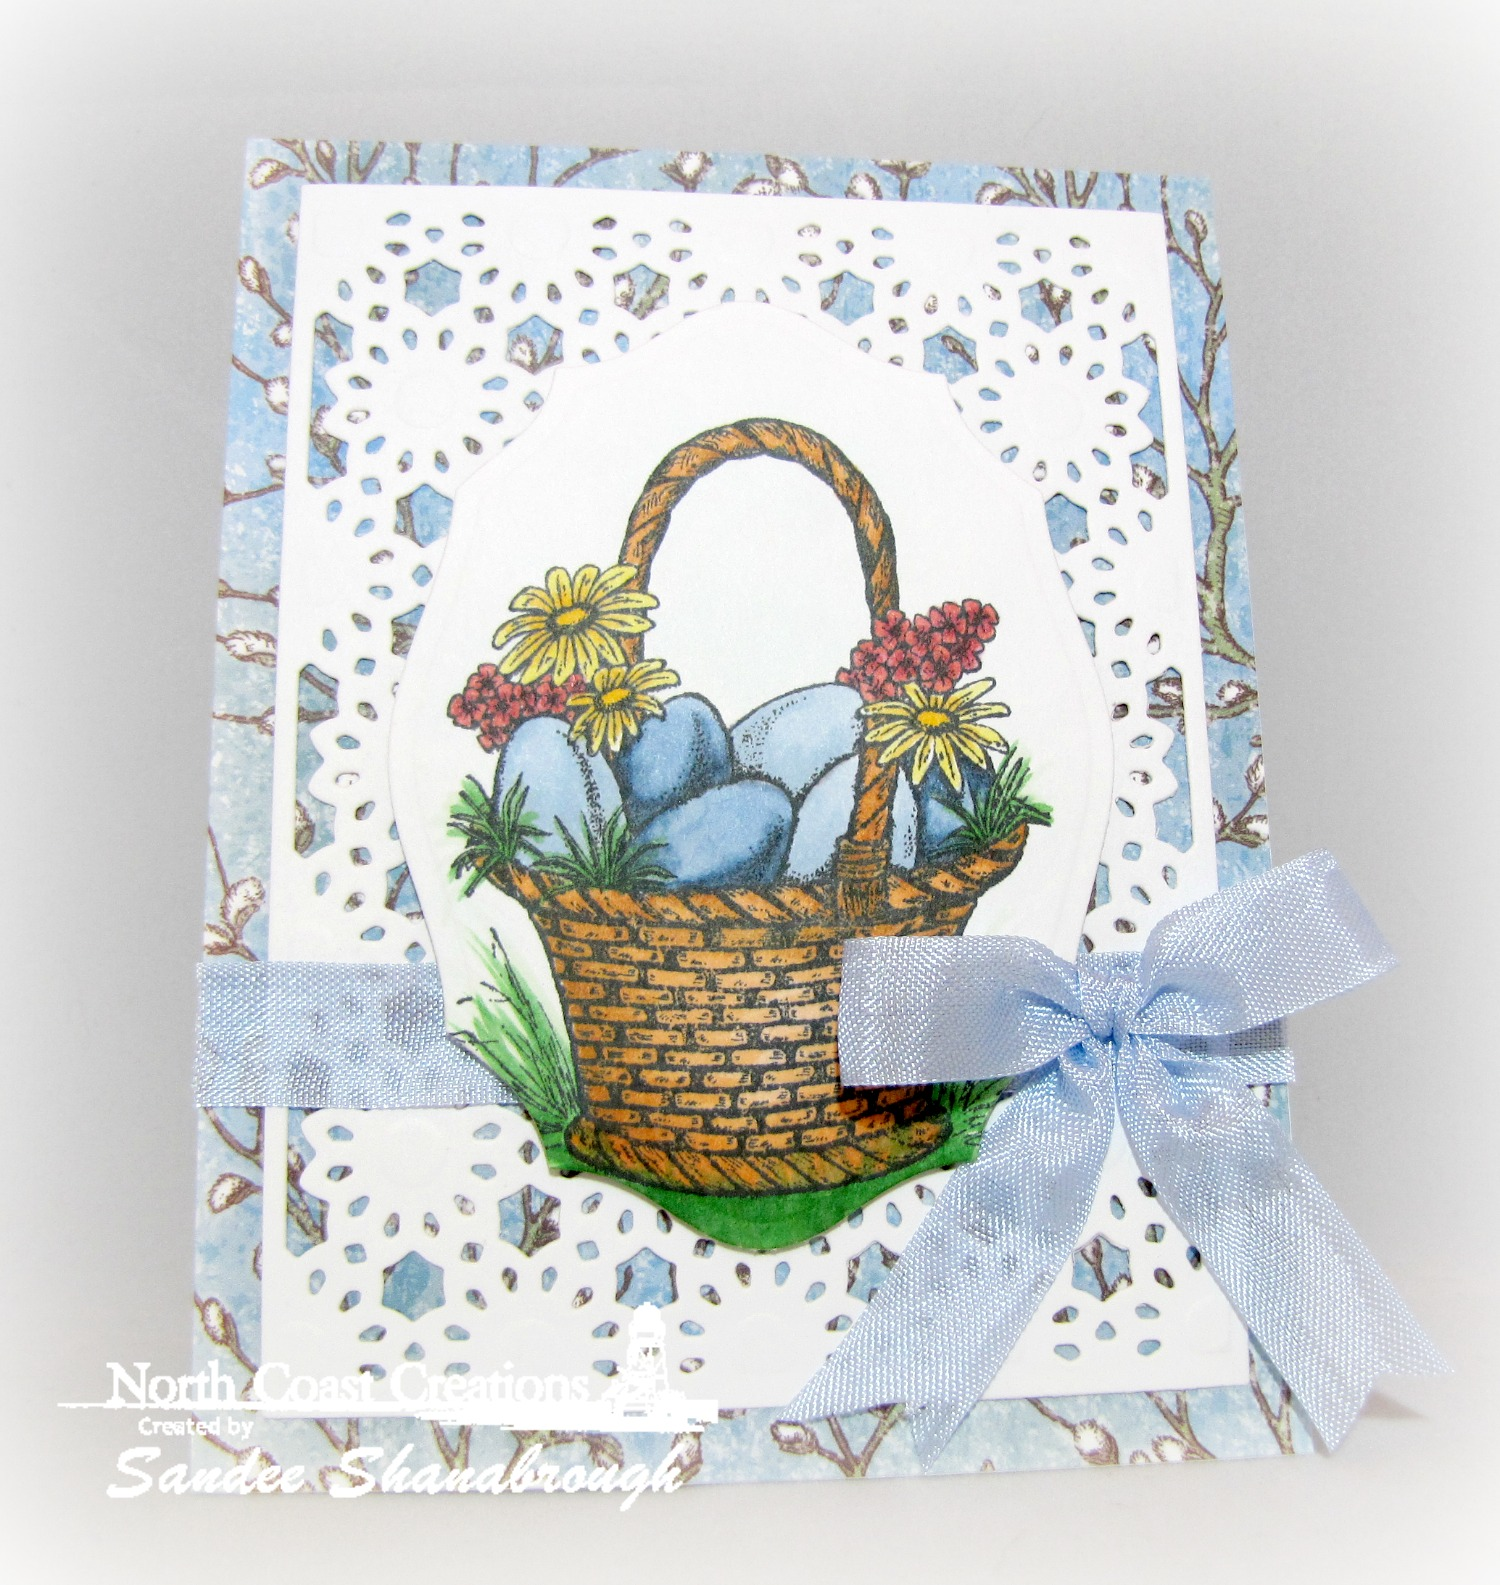 Stamps - North Coast Creations Easter Basket, ODBD Custom Daisy Chain Background Die, ODBD Elegant Oval Die, ODBD Blooming Garden Paper Collection